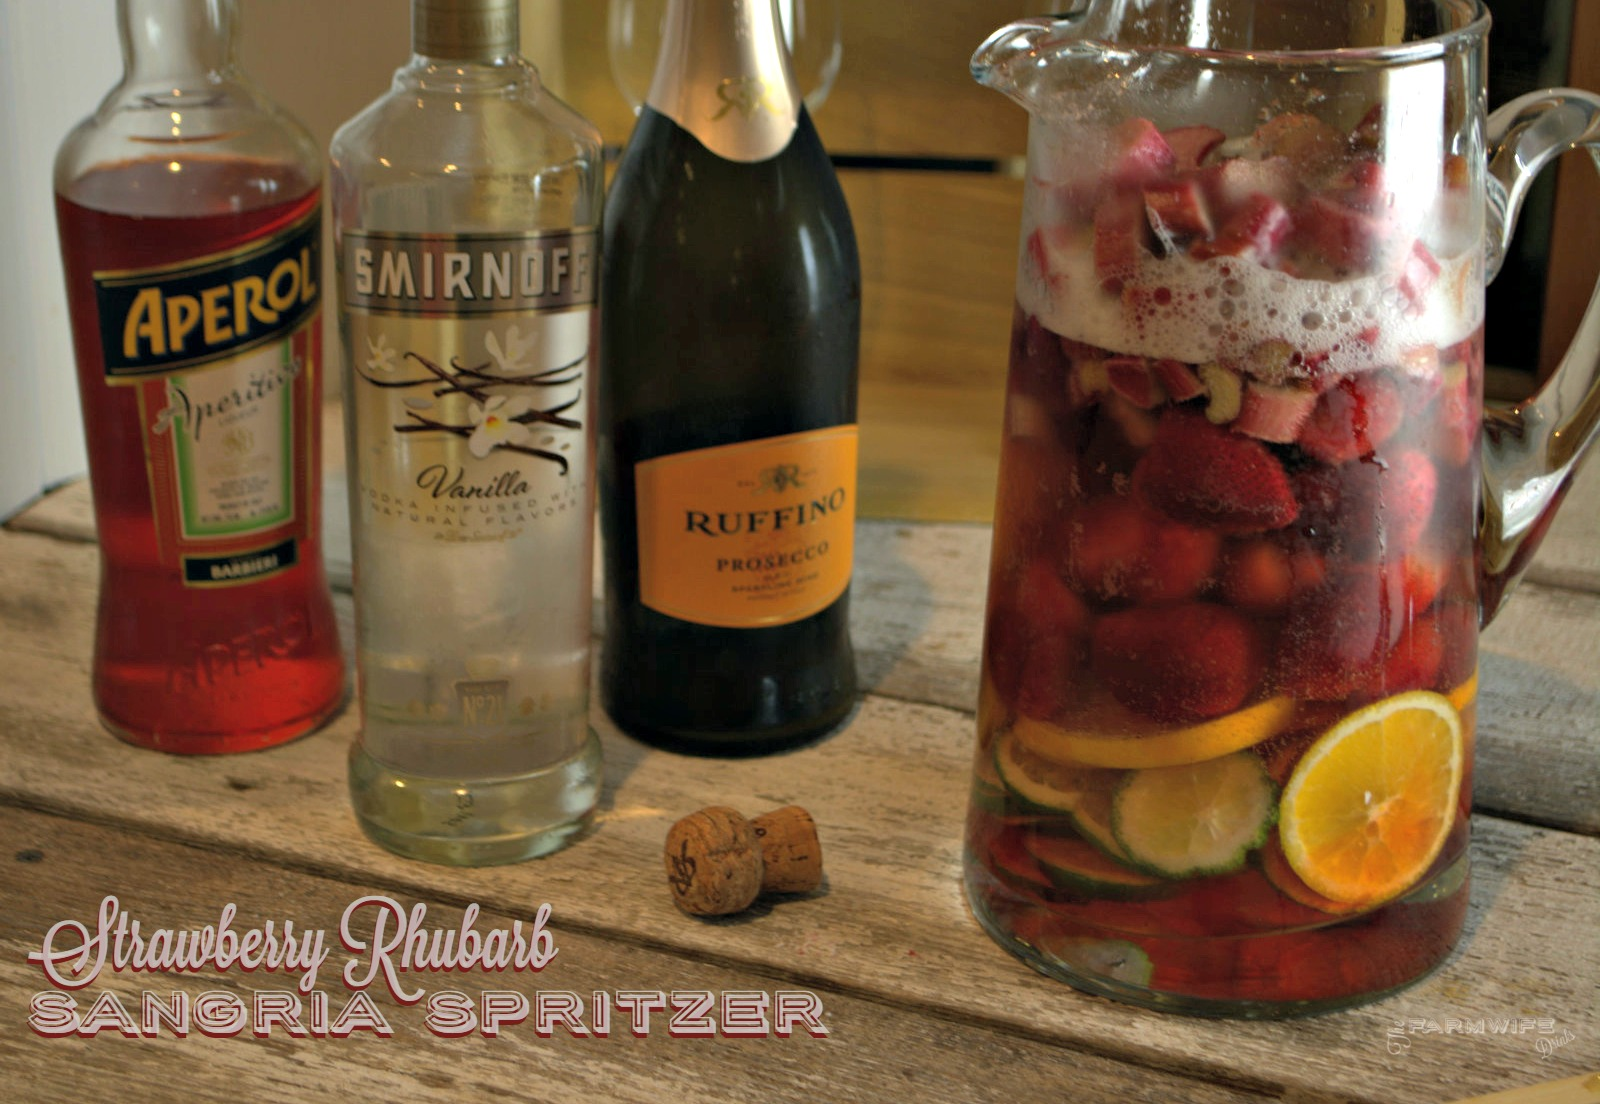 Aperol Sangria Spritzer combines the rhubarb, aromatic and orange flavors with prosecco and vanilla vodka to create early summer in a glass.